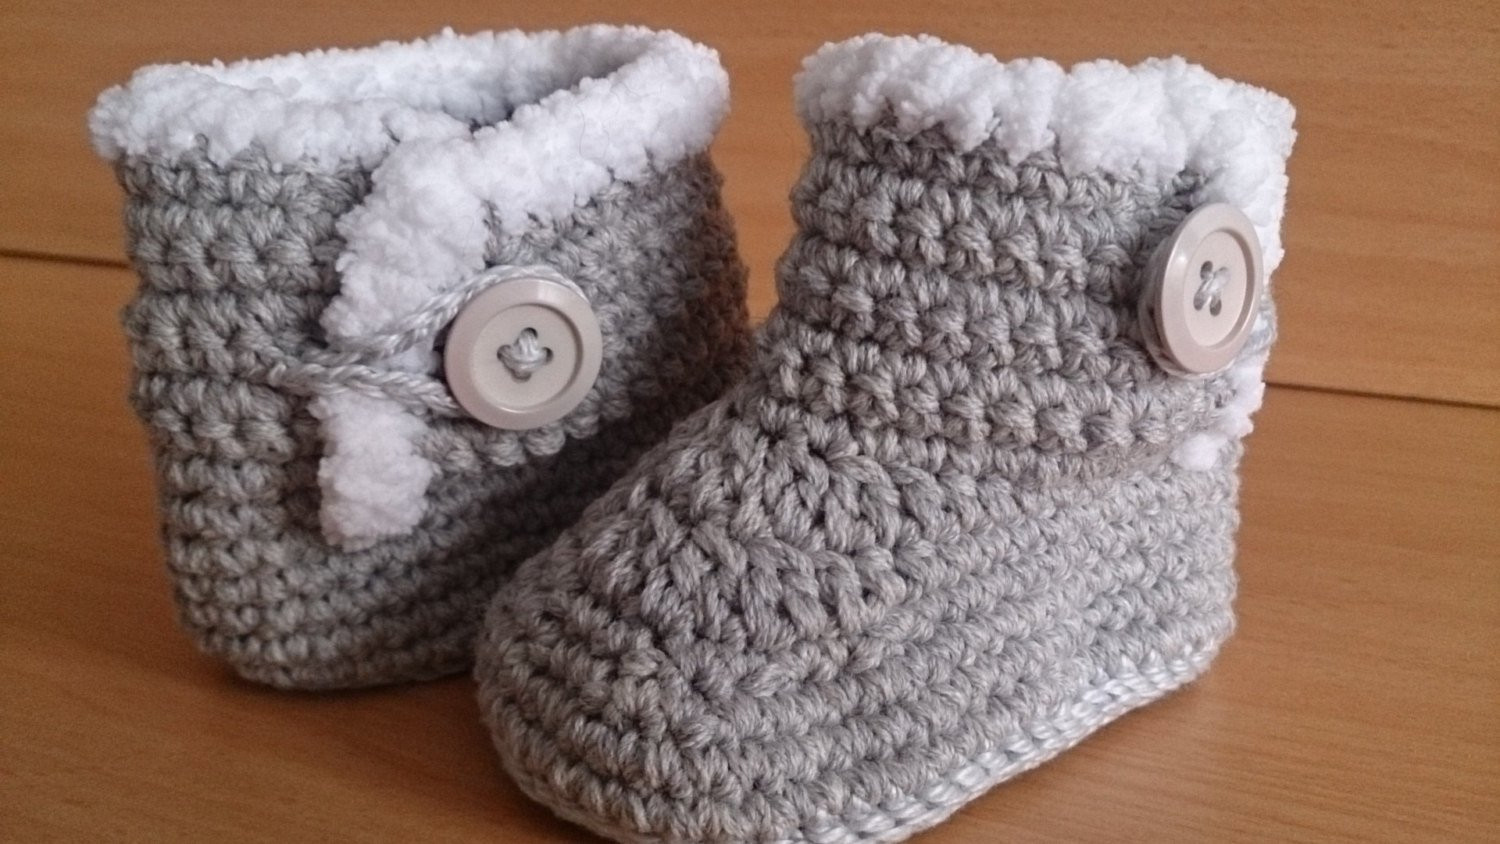 Crochet Boots Beautiful Baby Boots Crochet Baby Boots Ugg Style Baby Boots 3 6 Of Brilliant 43 Photos Crochet Boots